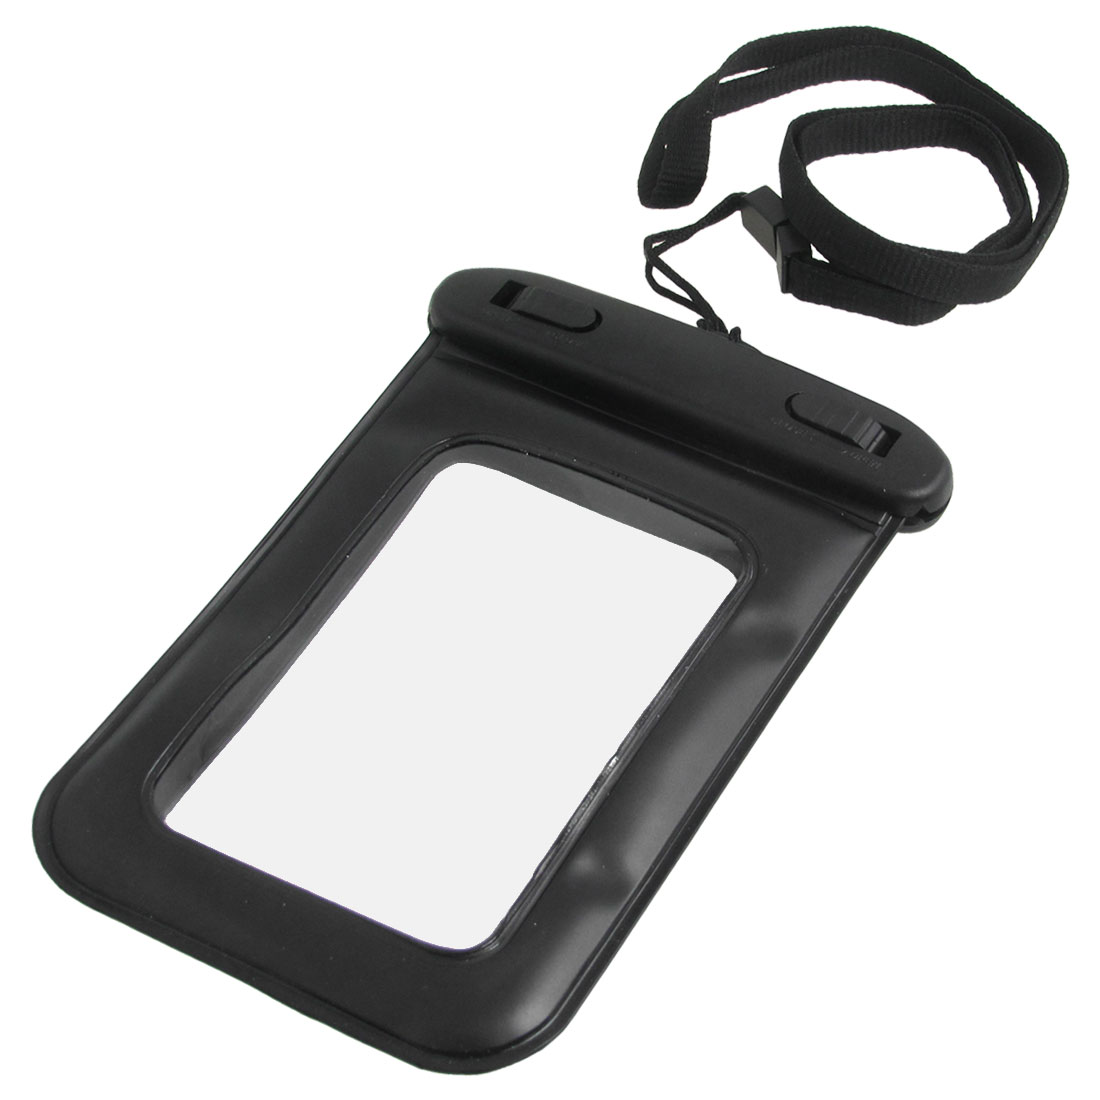 Skiing Surfing Sports Water Resistant Case Pouch for iPhone 3G 3GS 4 4G